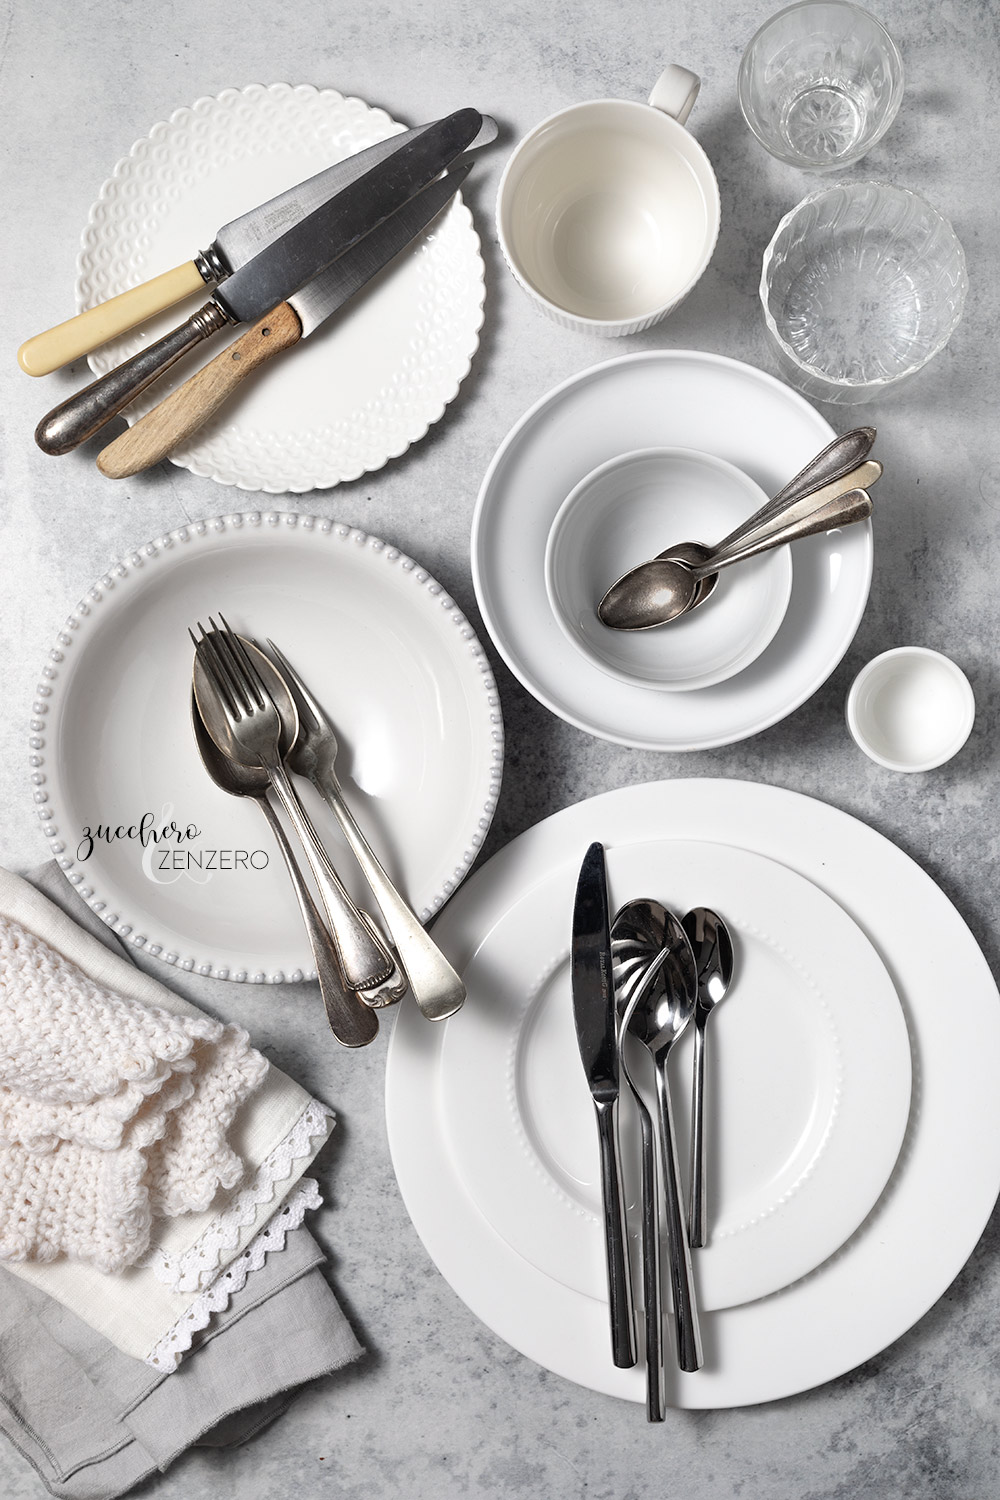 props for food photography - 5 tips to improve your food photography